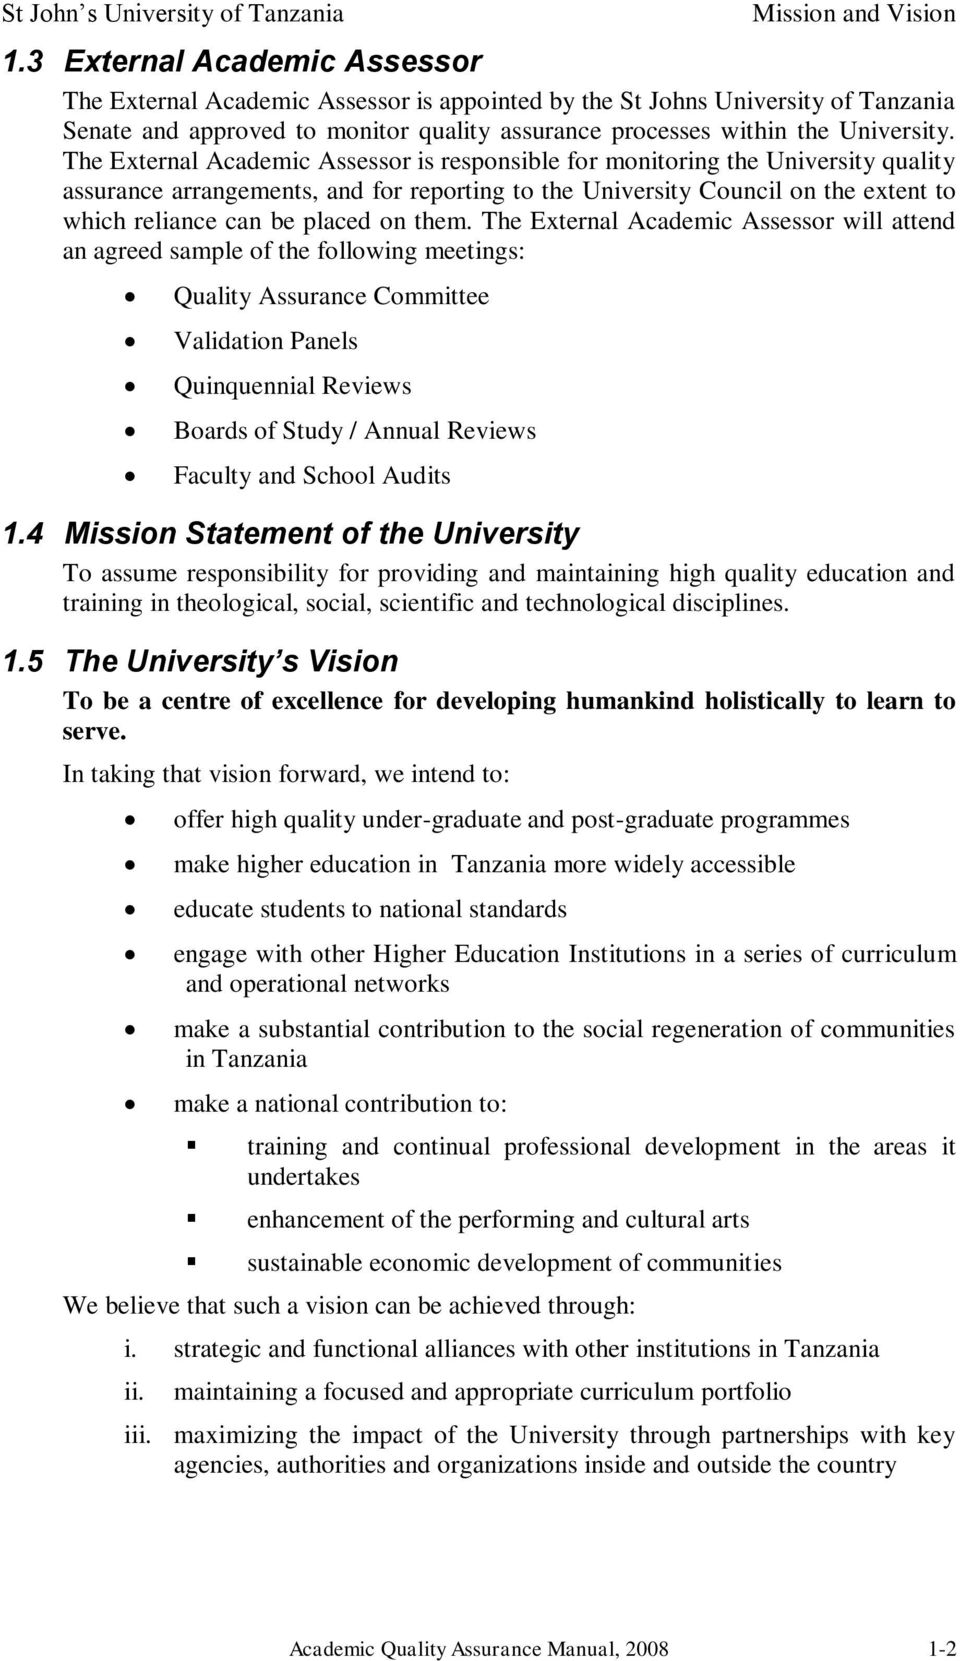 The External Academic Assessor is responsible for monitoring the University quality assurance arrangements, and for reporting to the University Council on the extent to which reliance can be placed